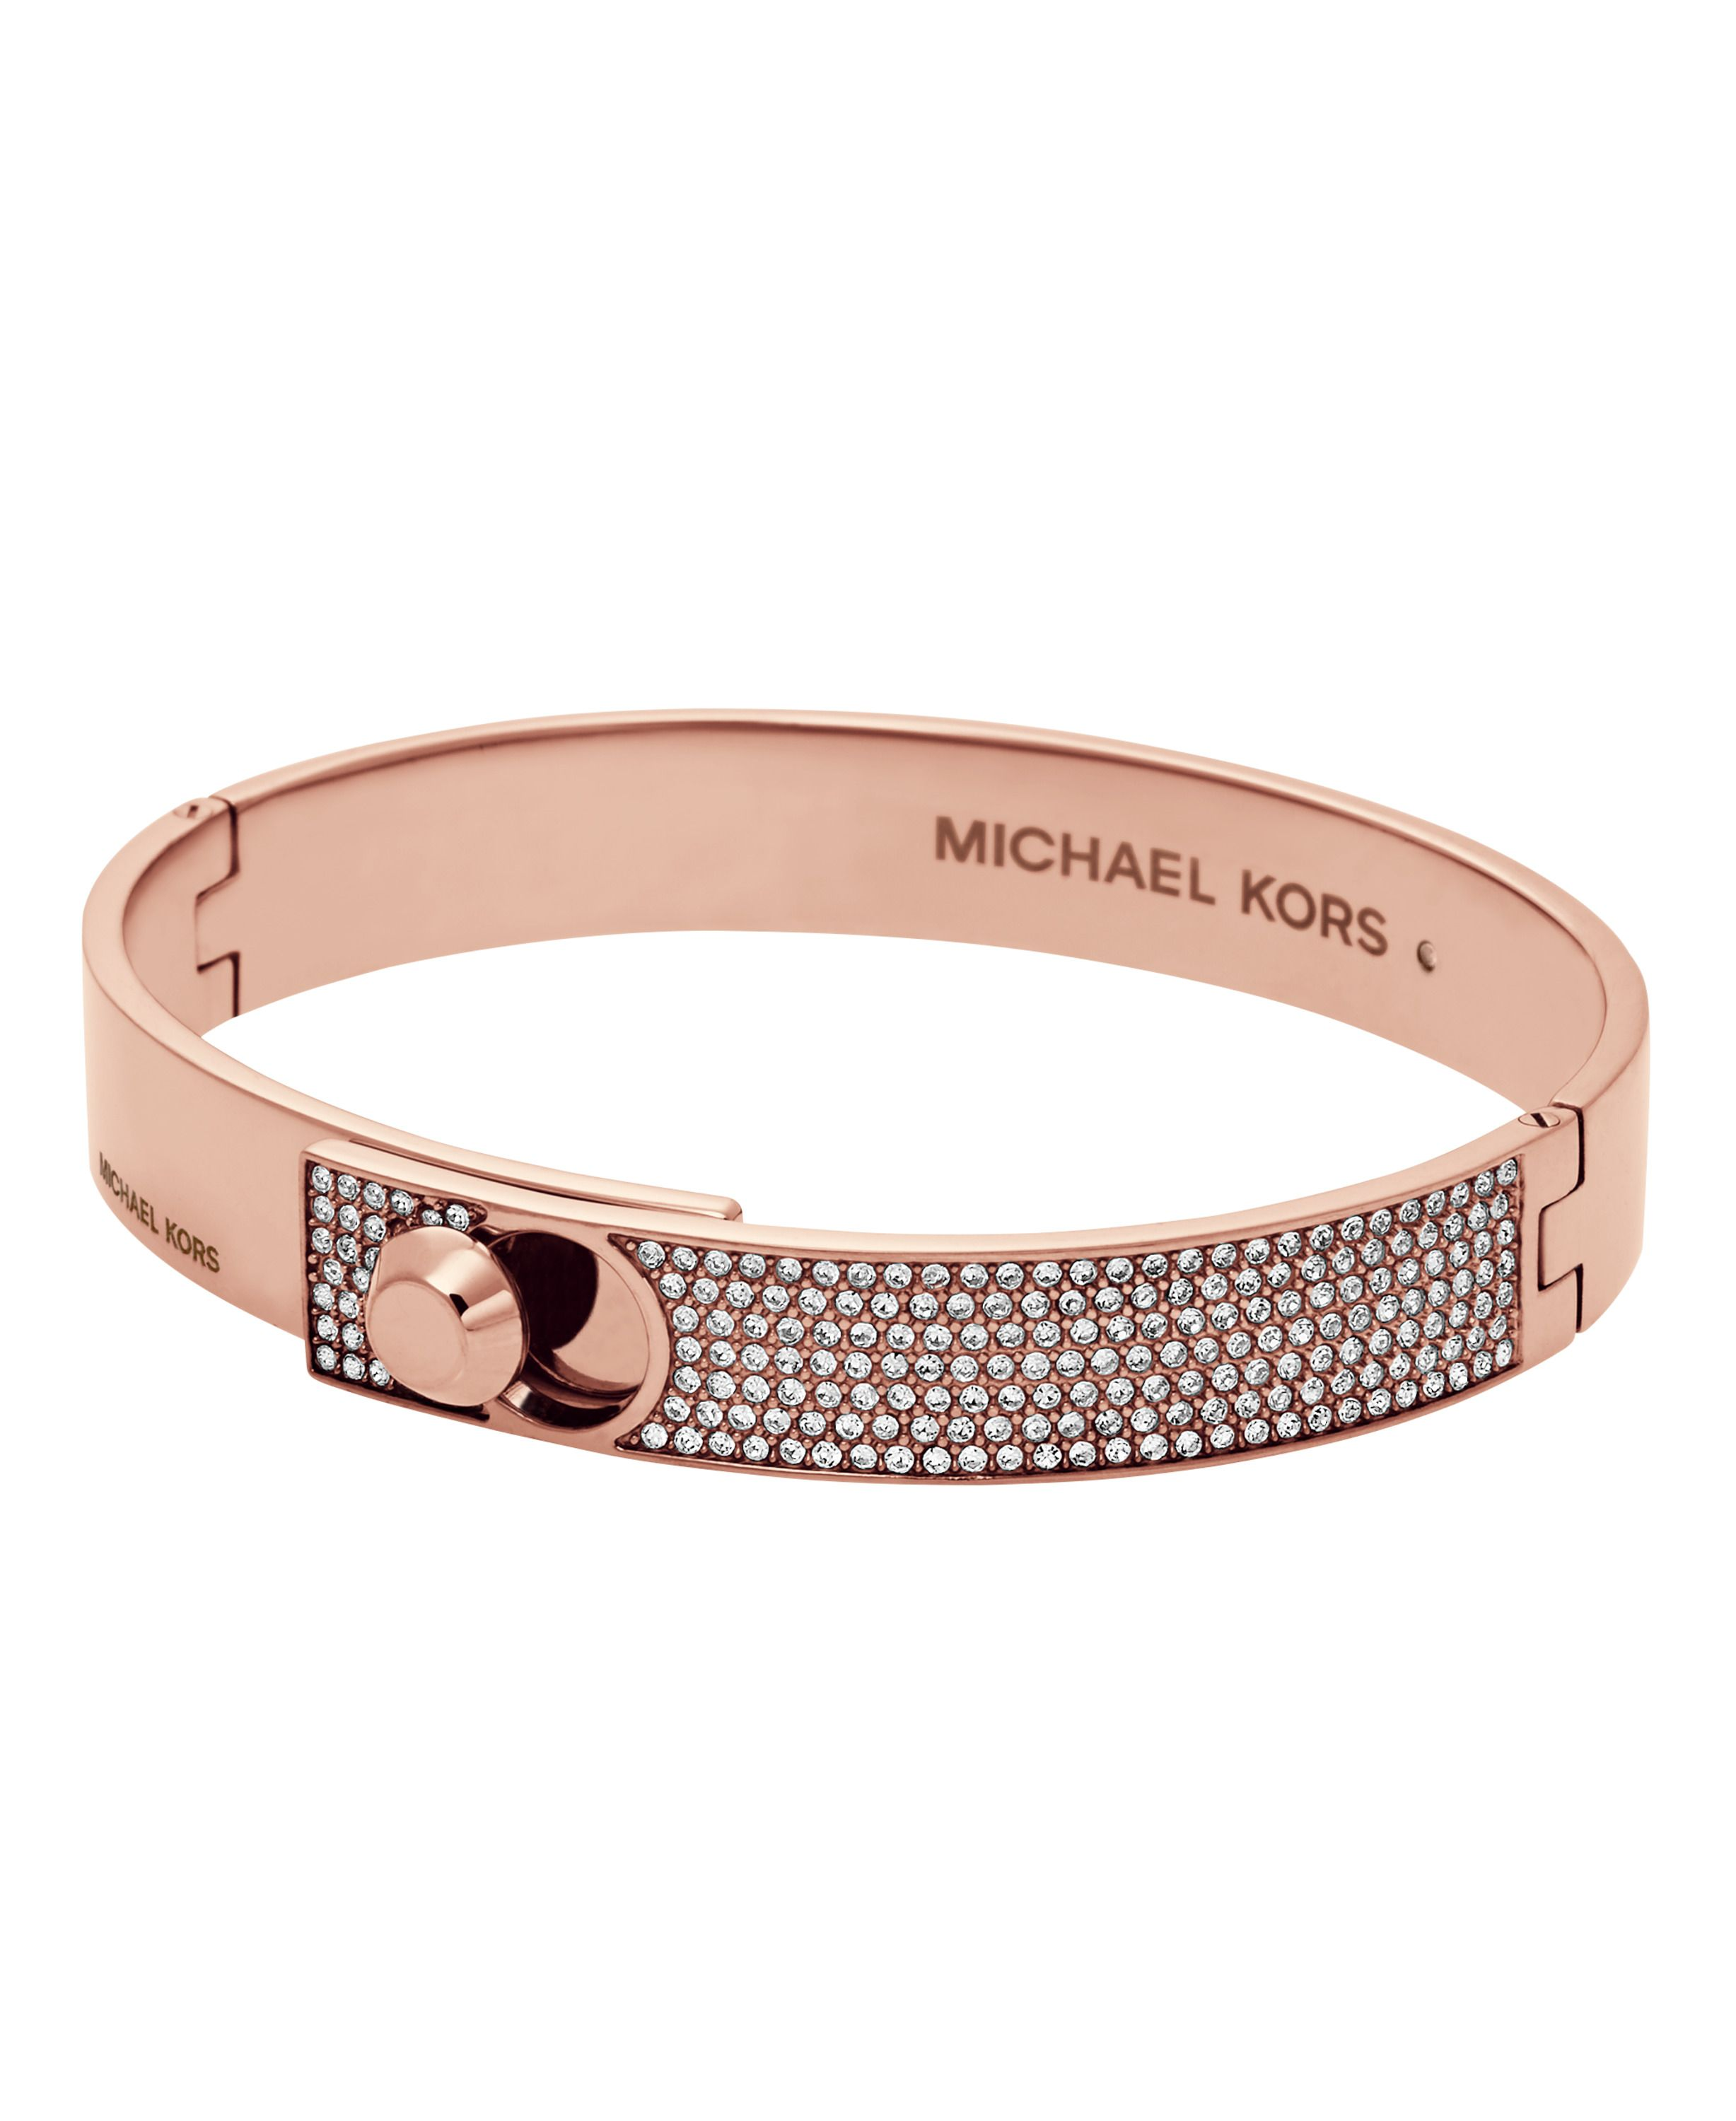 michael kors with bracelet michael kors logo bracelet house of fraser 1786